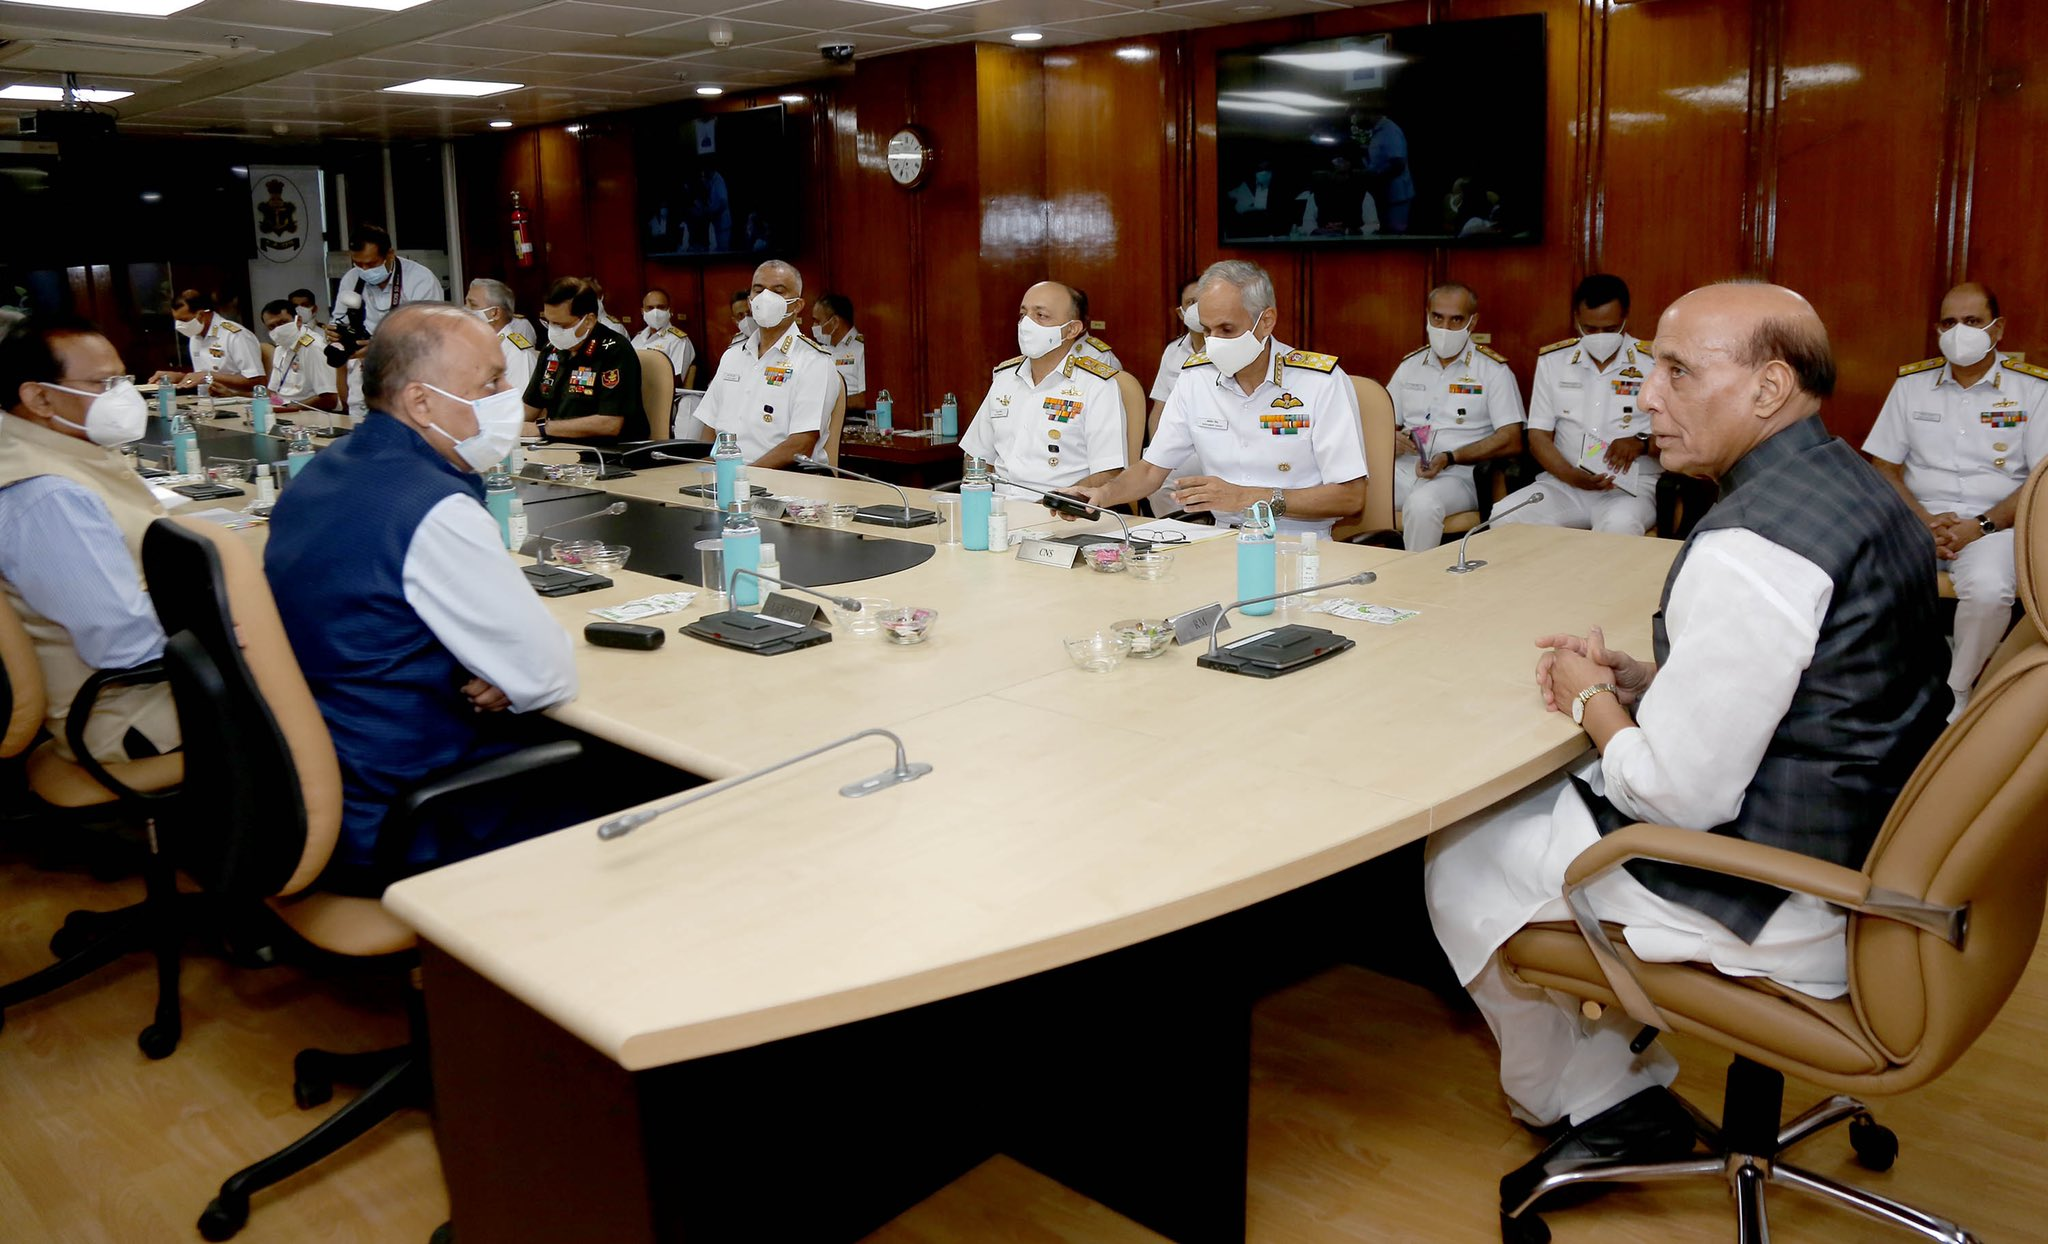 Naval Commanders' Conference: As a responsible maritime stakeholder India supports rule-based stable world order, says Rajnath